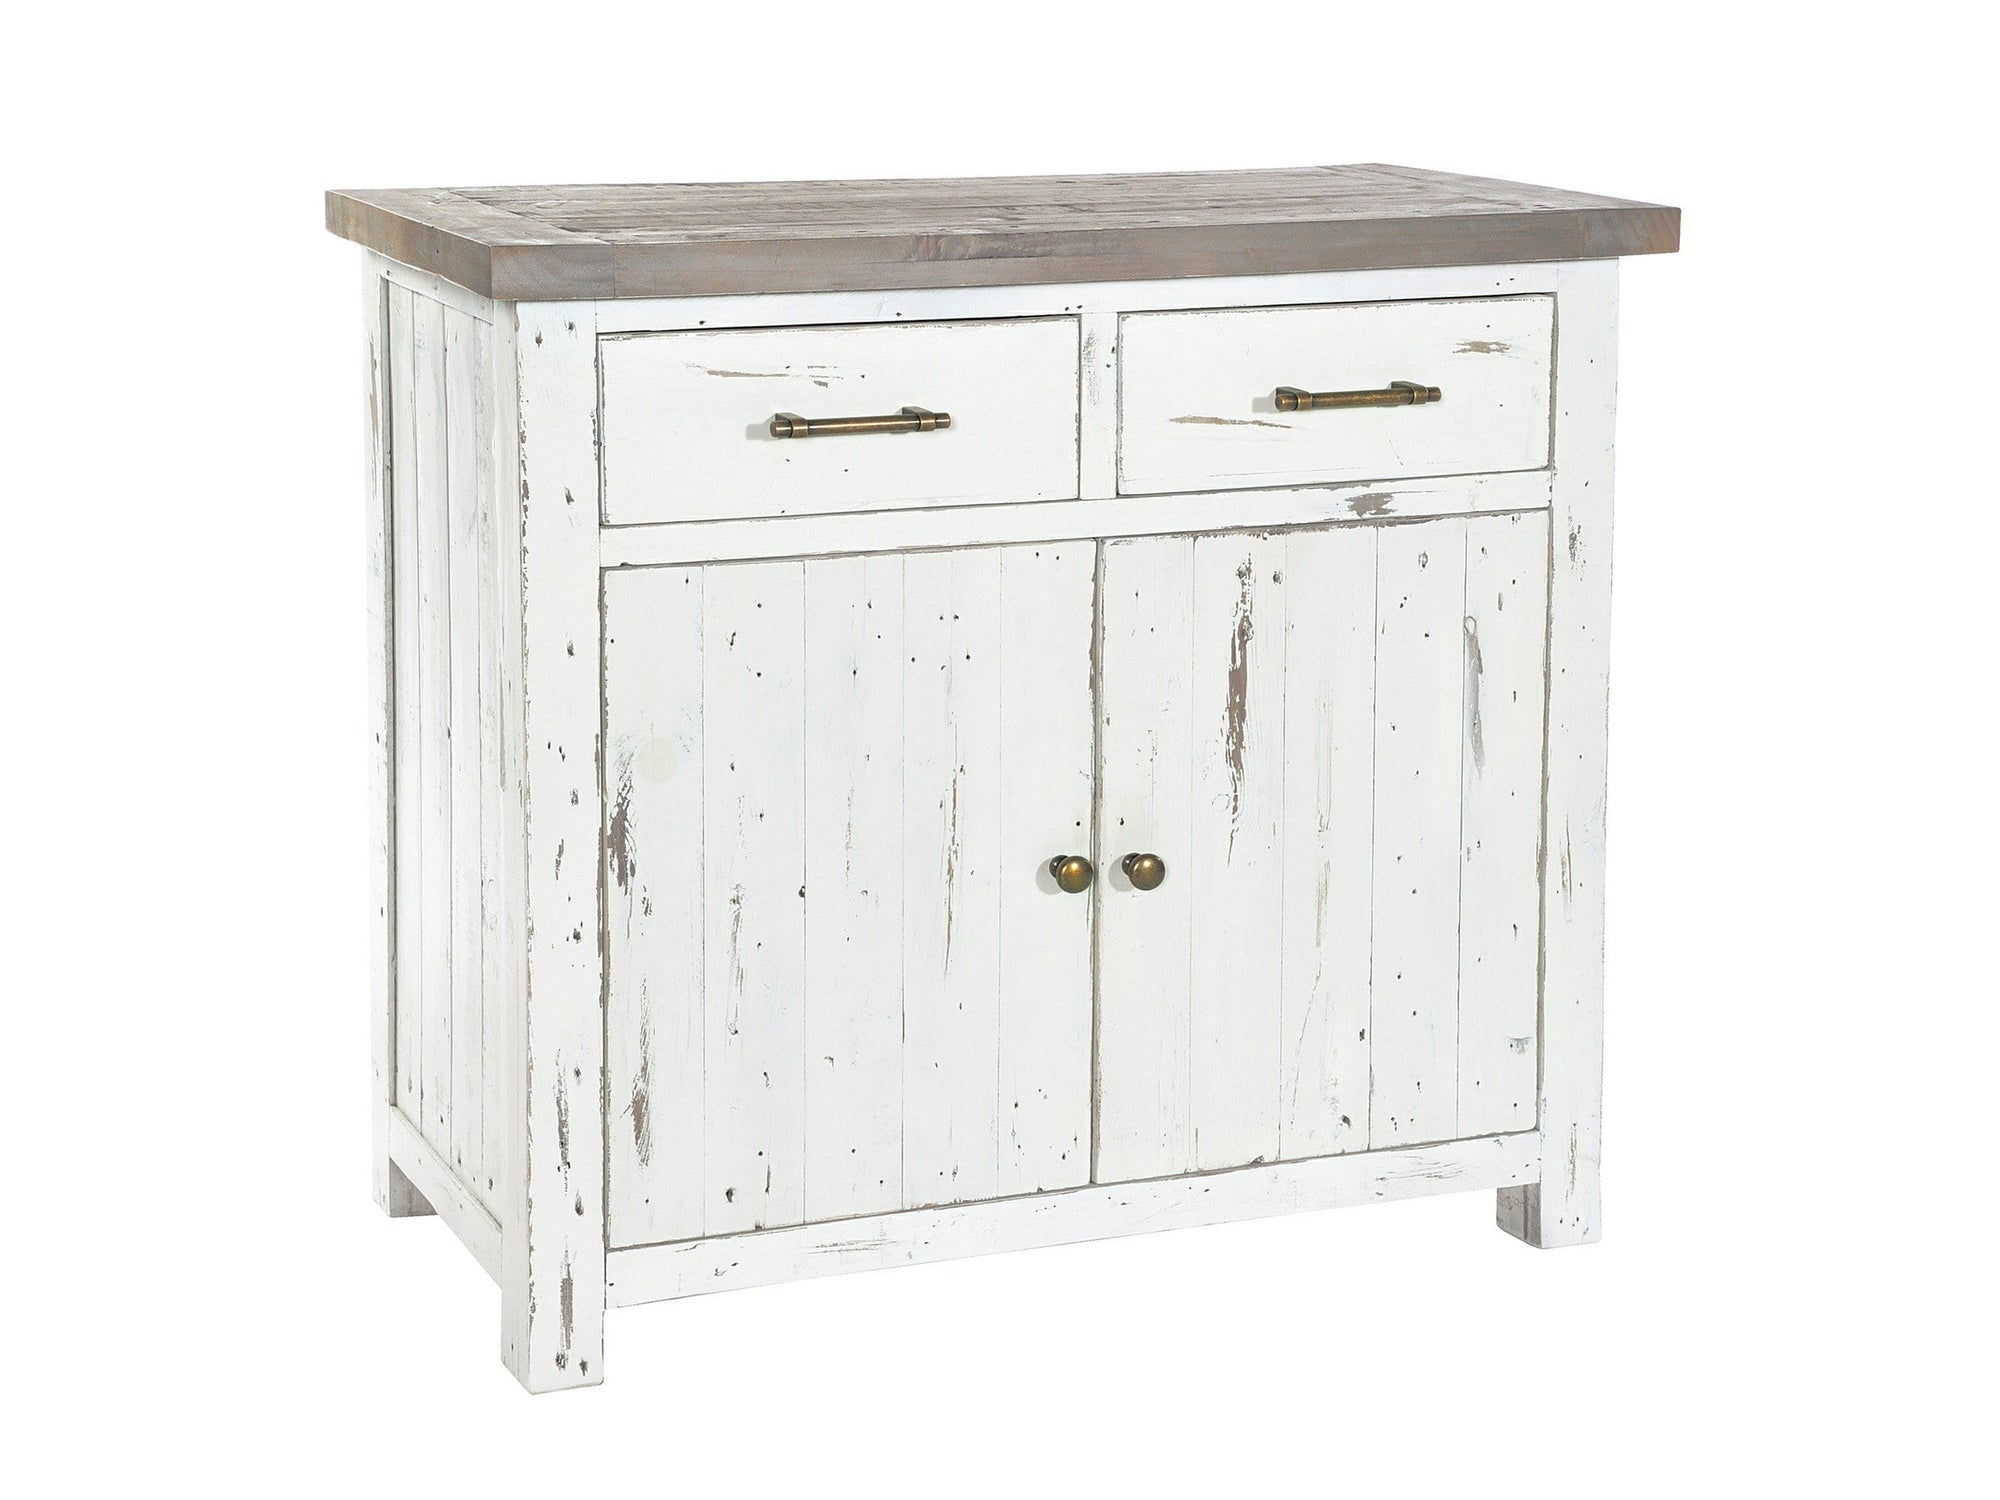 Small, distressed wood sideboard in ivory white colour, with two top drawers plus storage cupboard